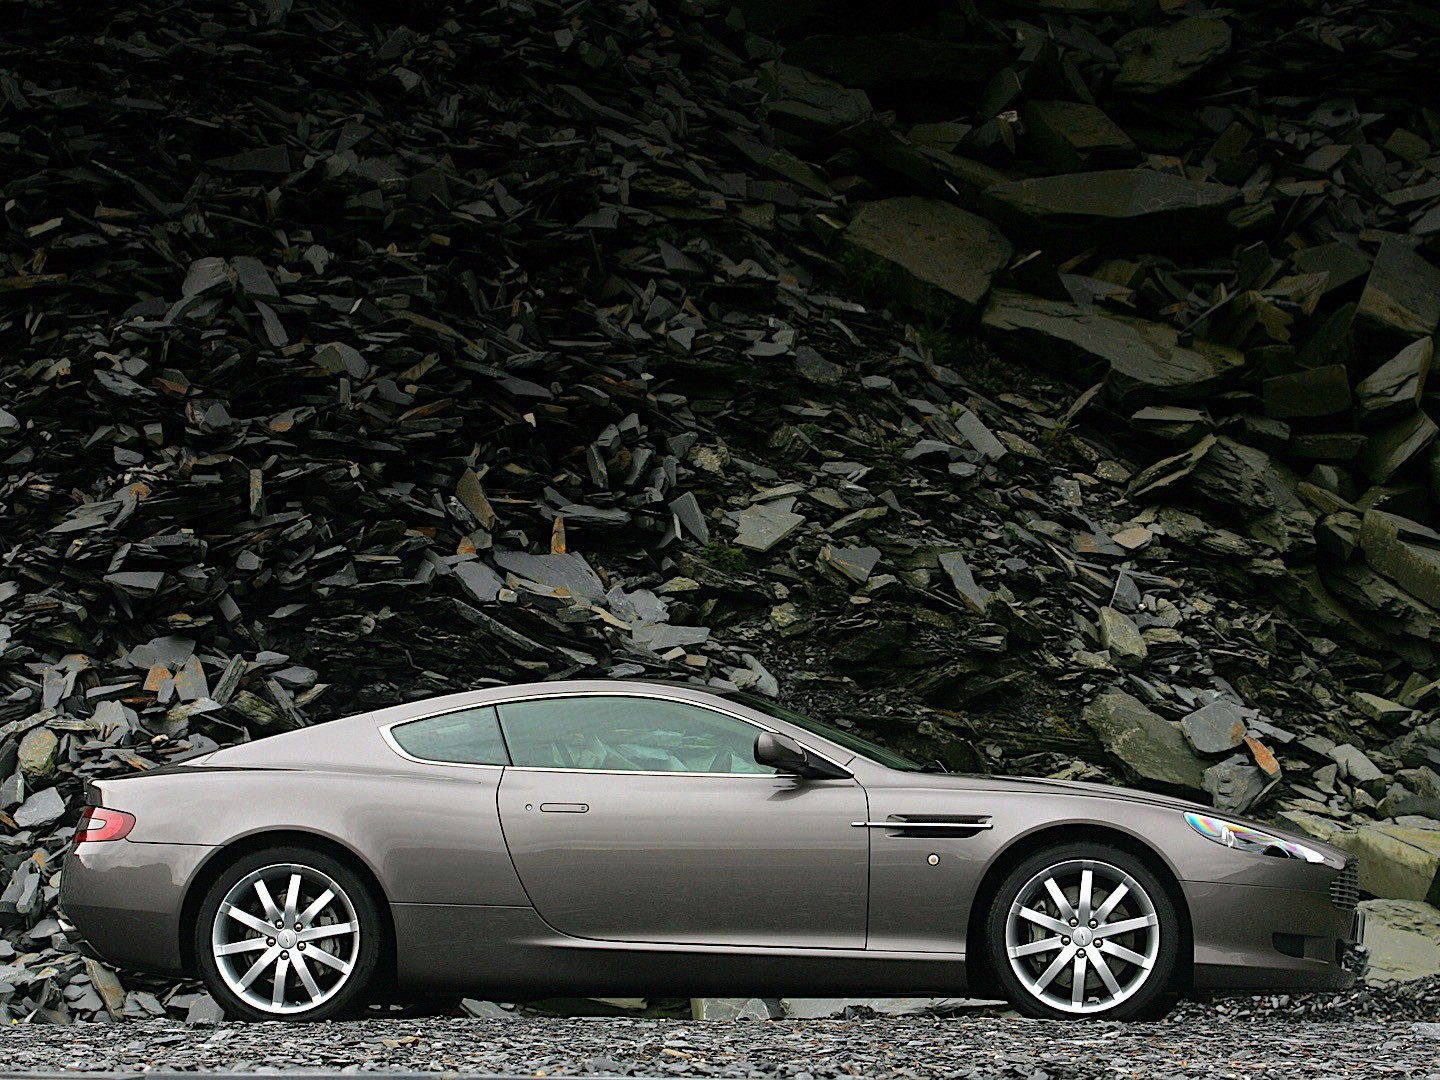 aston martin db9 coupe specs - 2004, 2005, 2006, 2007, 2008, 2009